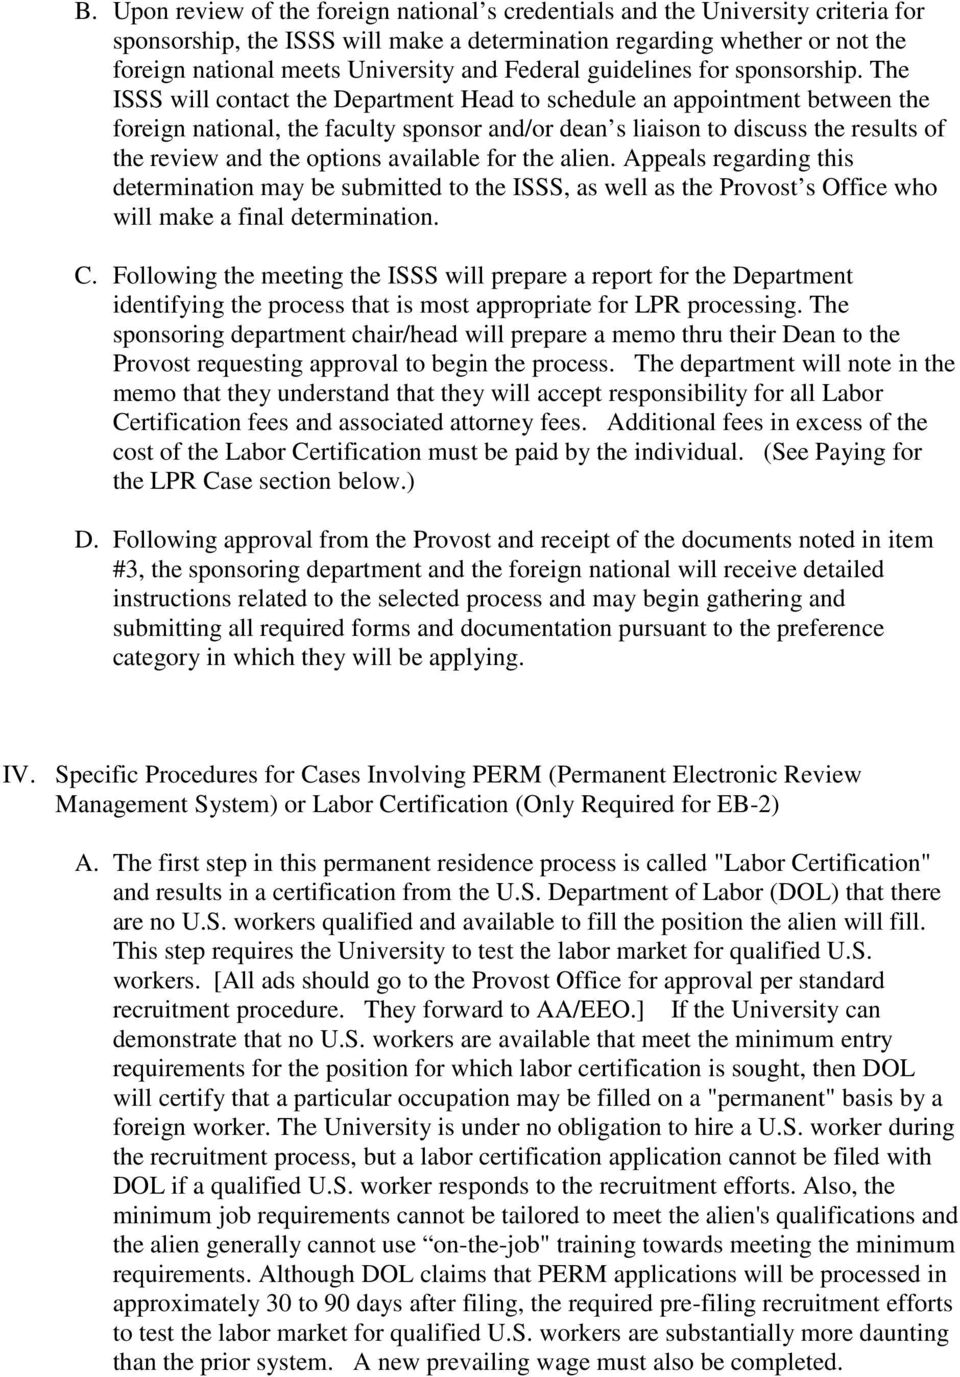 PERMANENT RESIDENCY IN THE UNITED STATES (GREEN CARD) - PDF